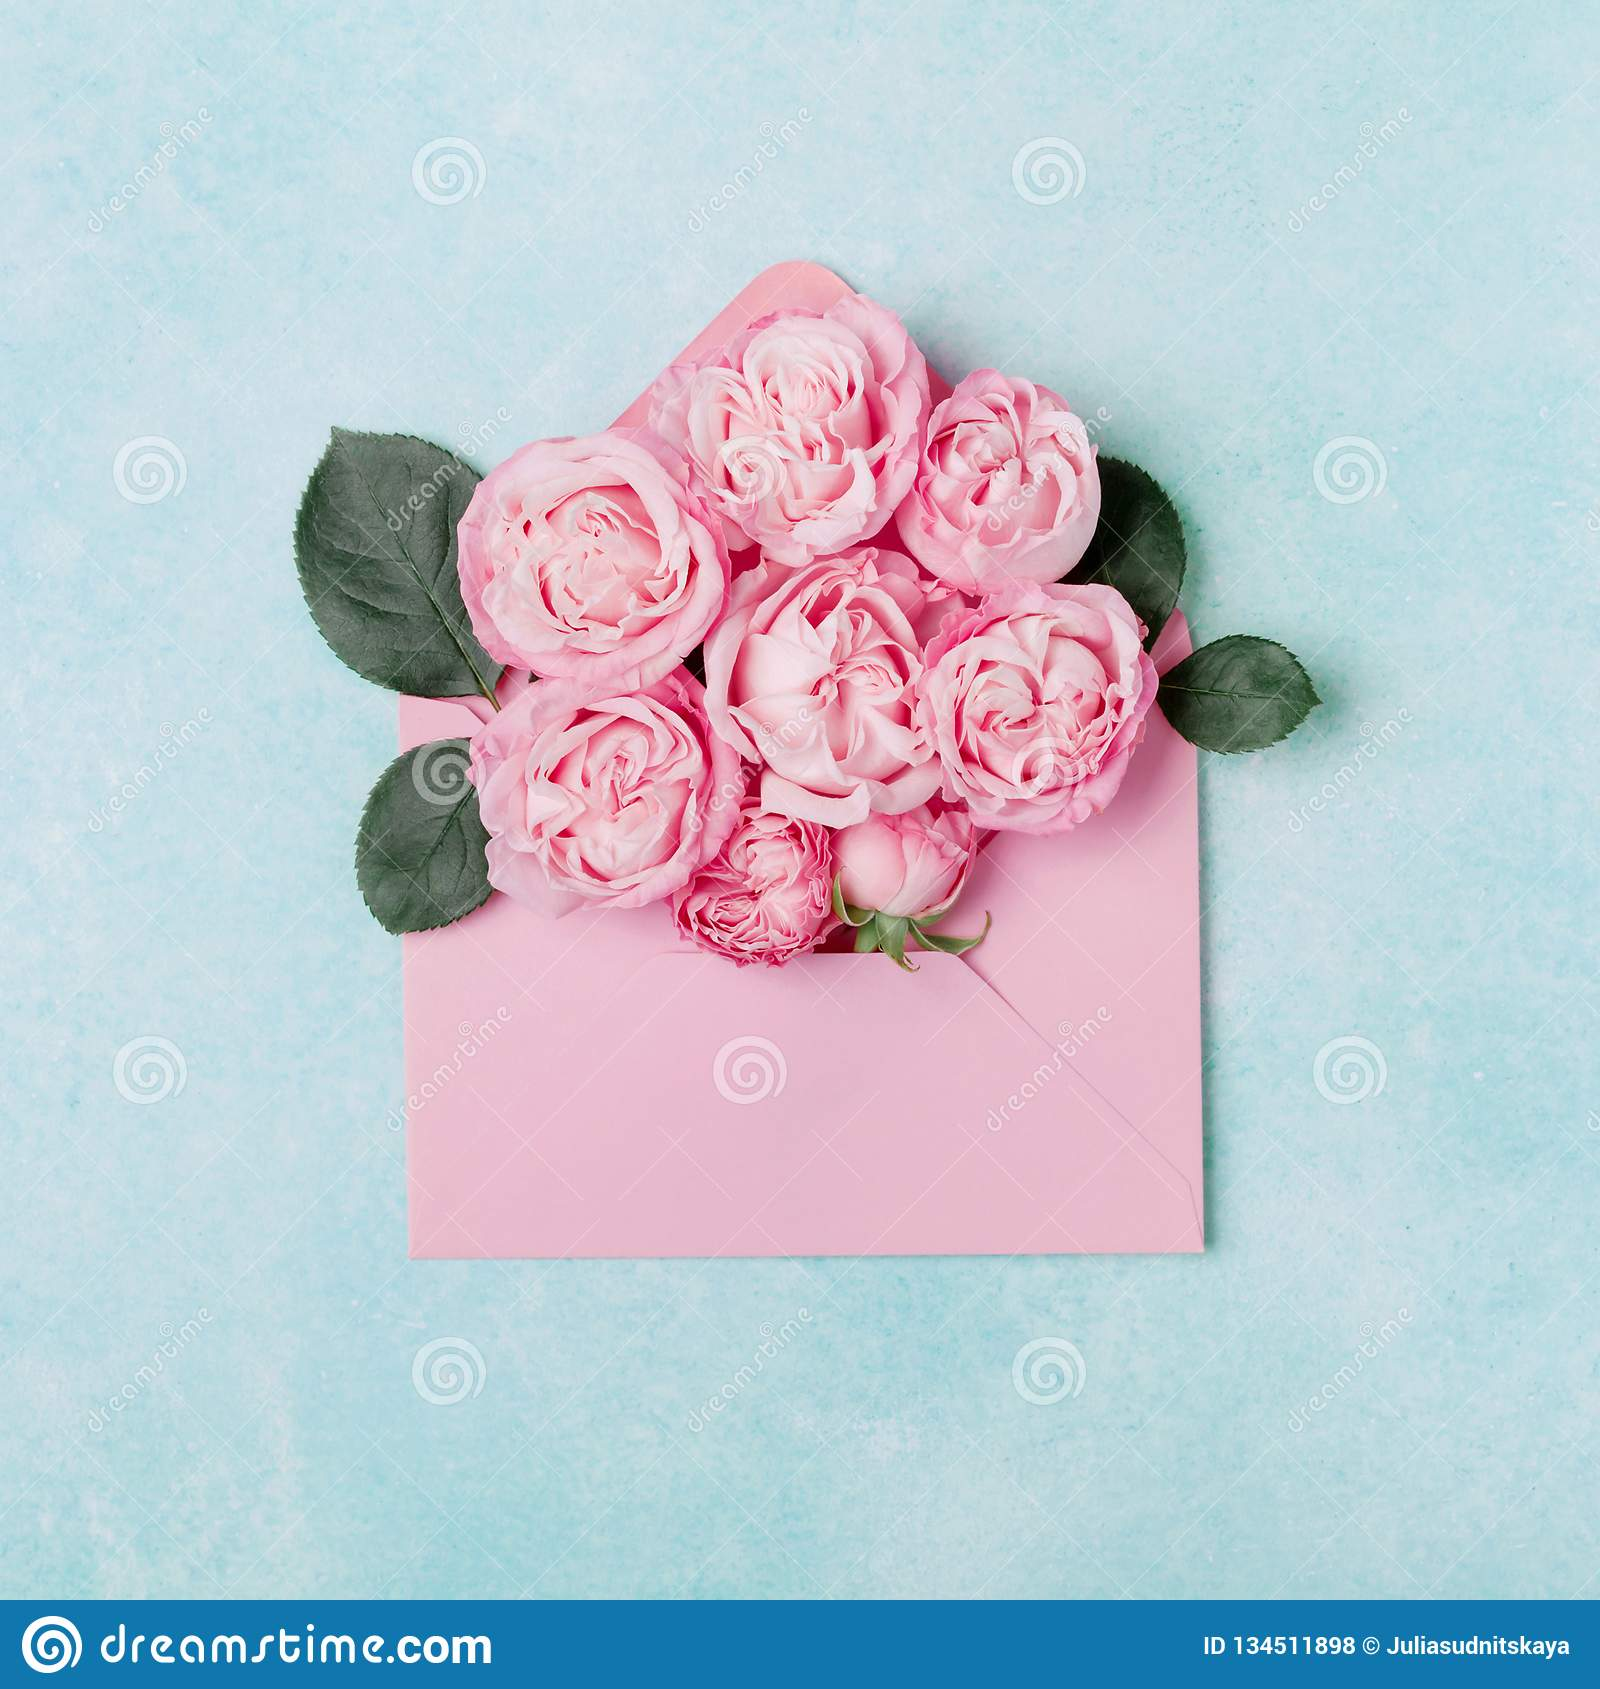 Beautiful Rose Flowers In The Envelope On Blue Background